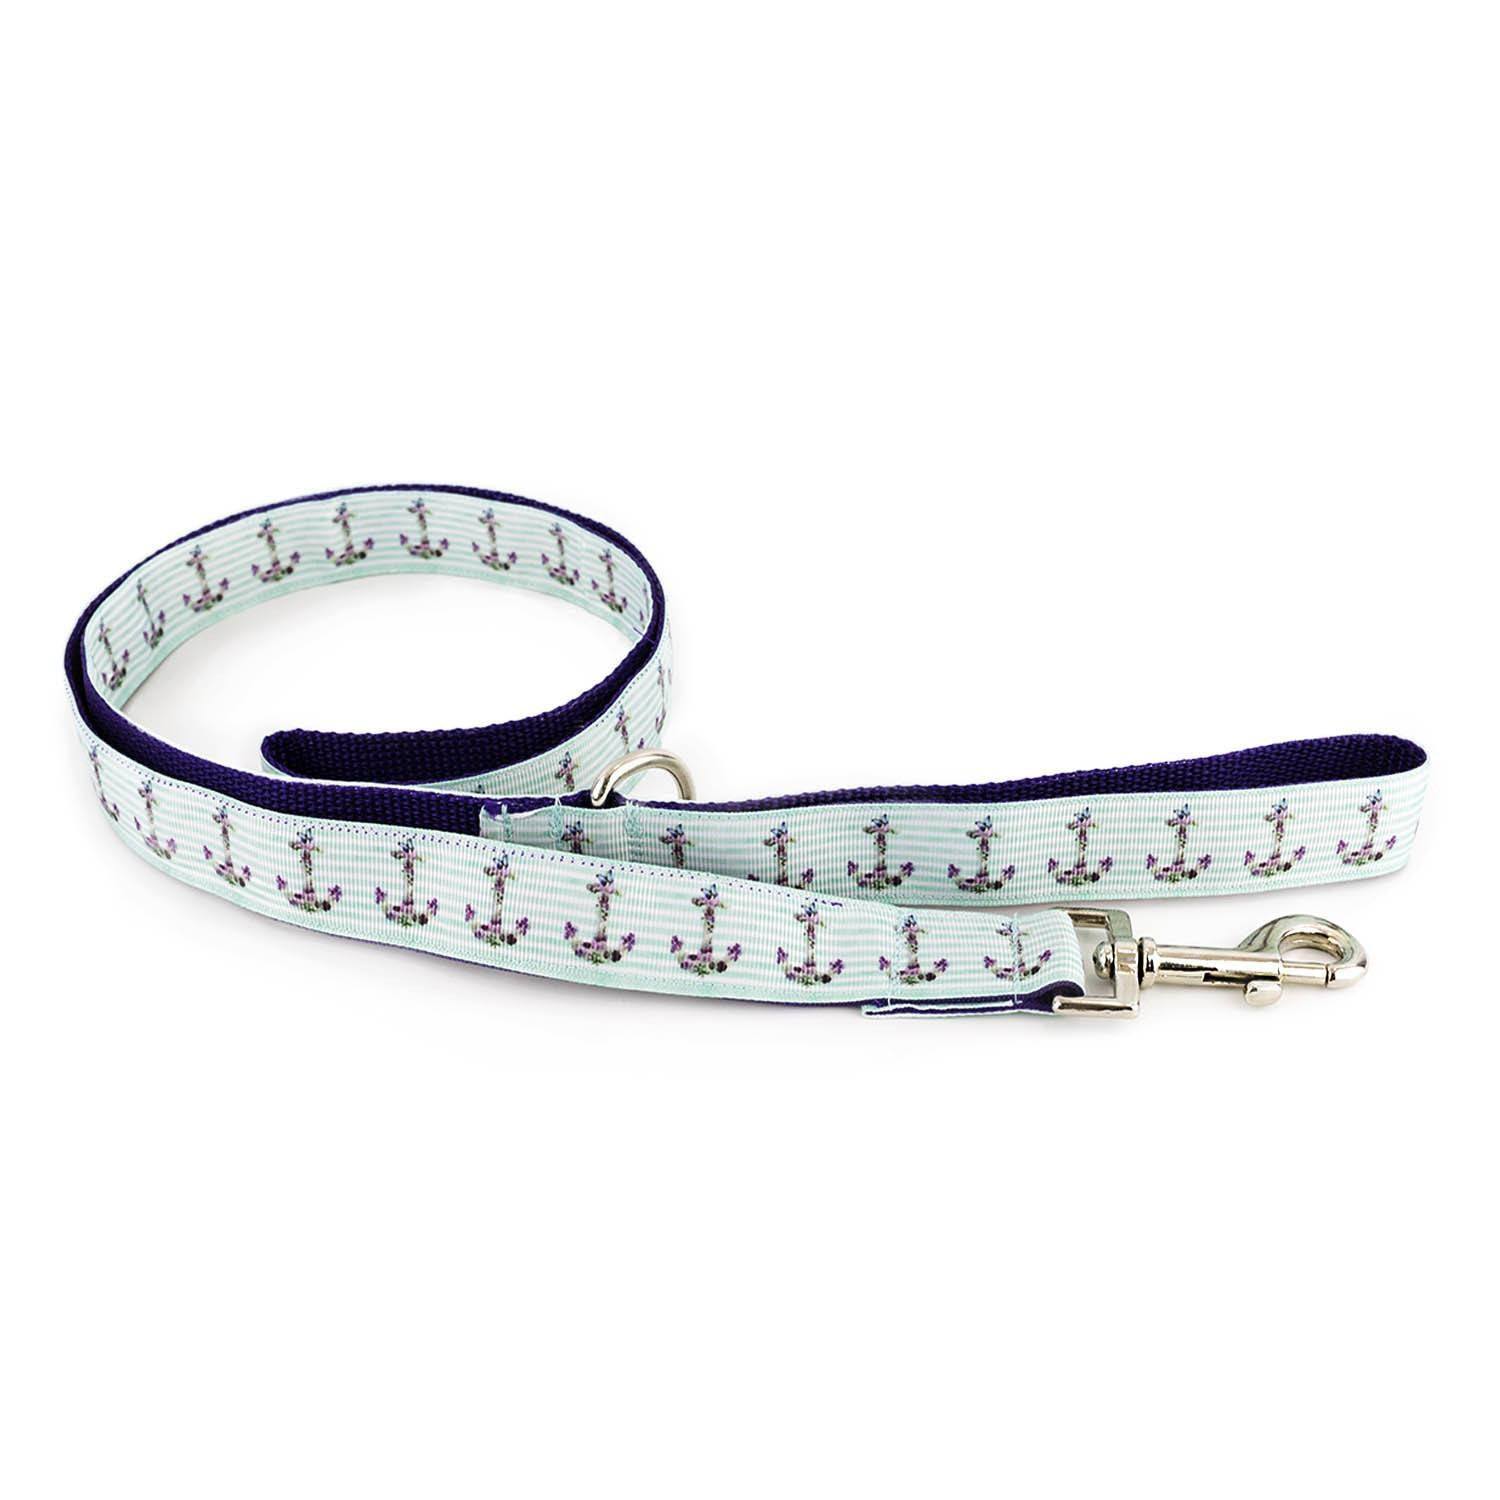 Blue Anchors on Celeste Leash - Beach & Dog Co.